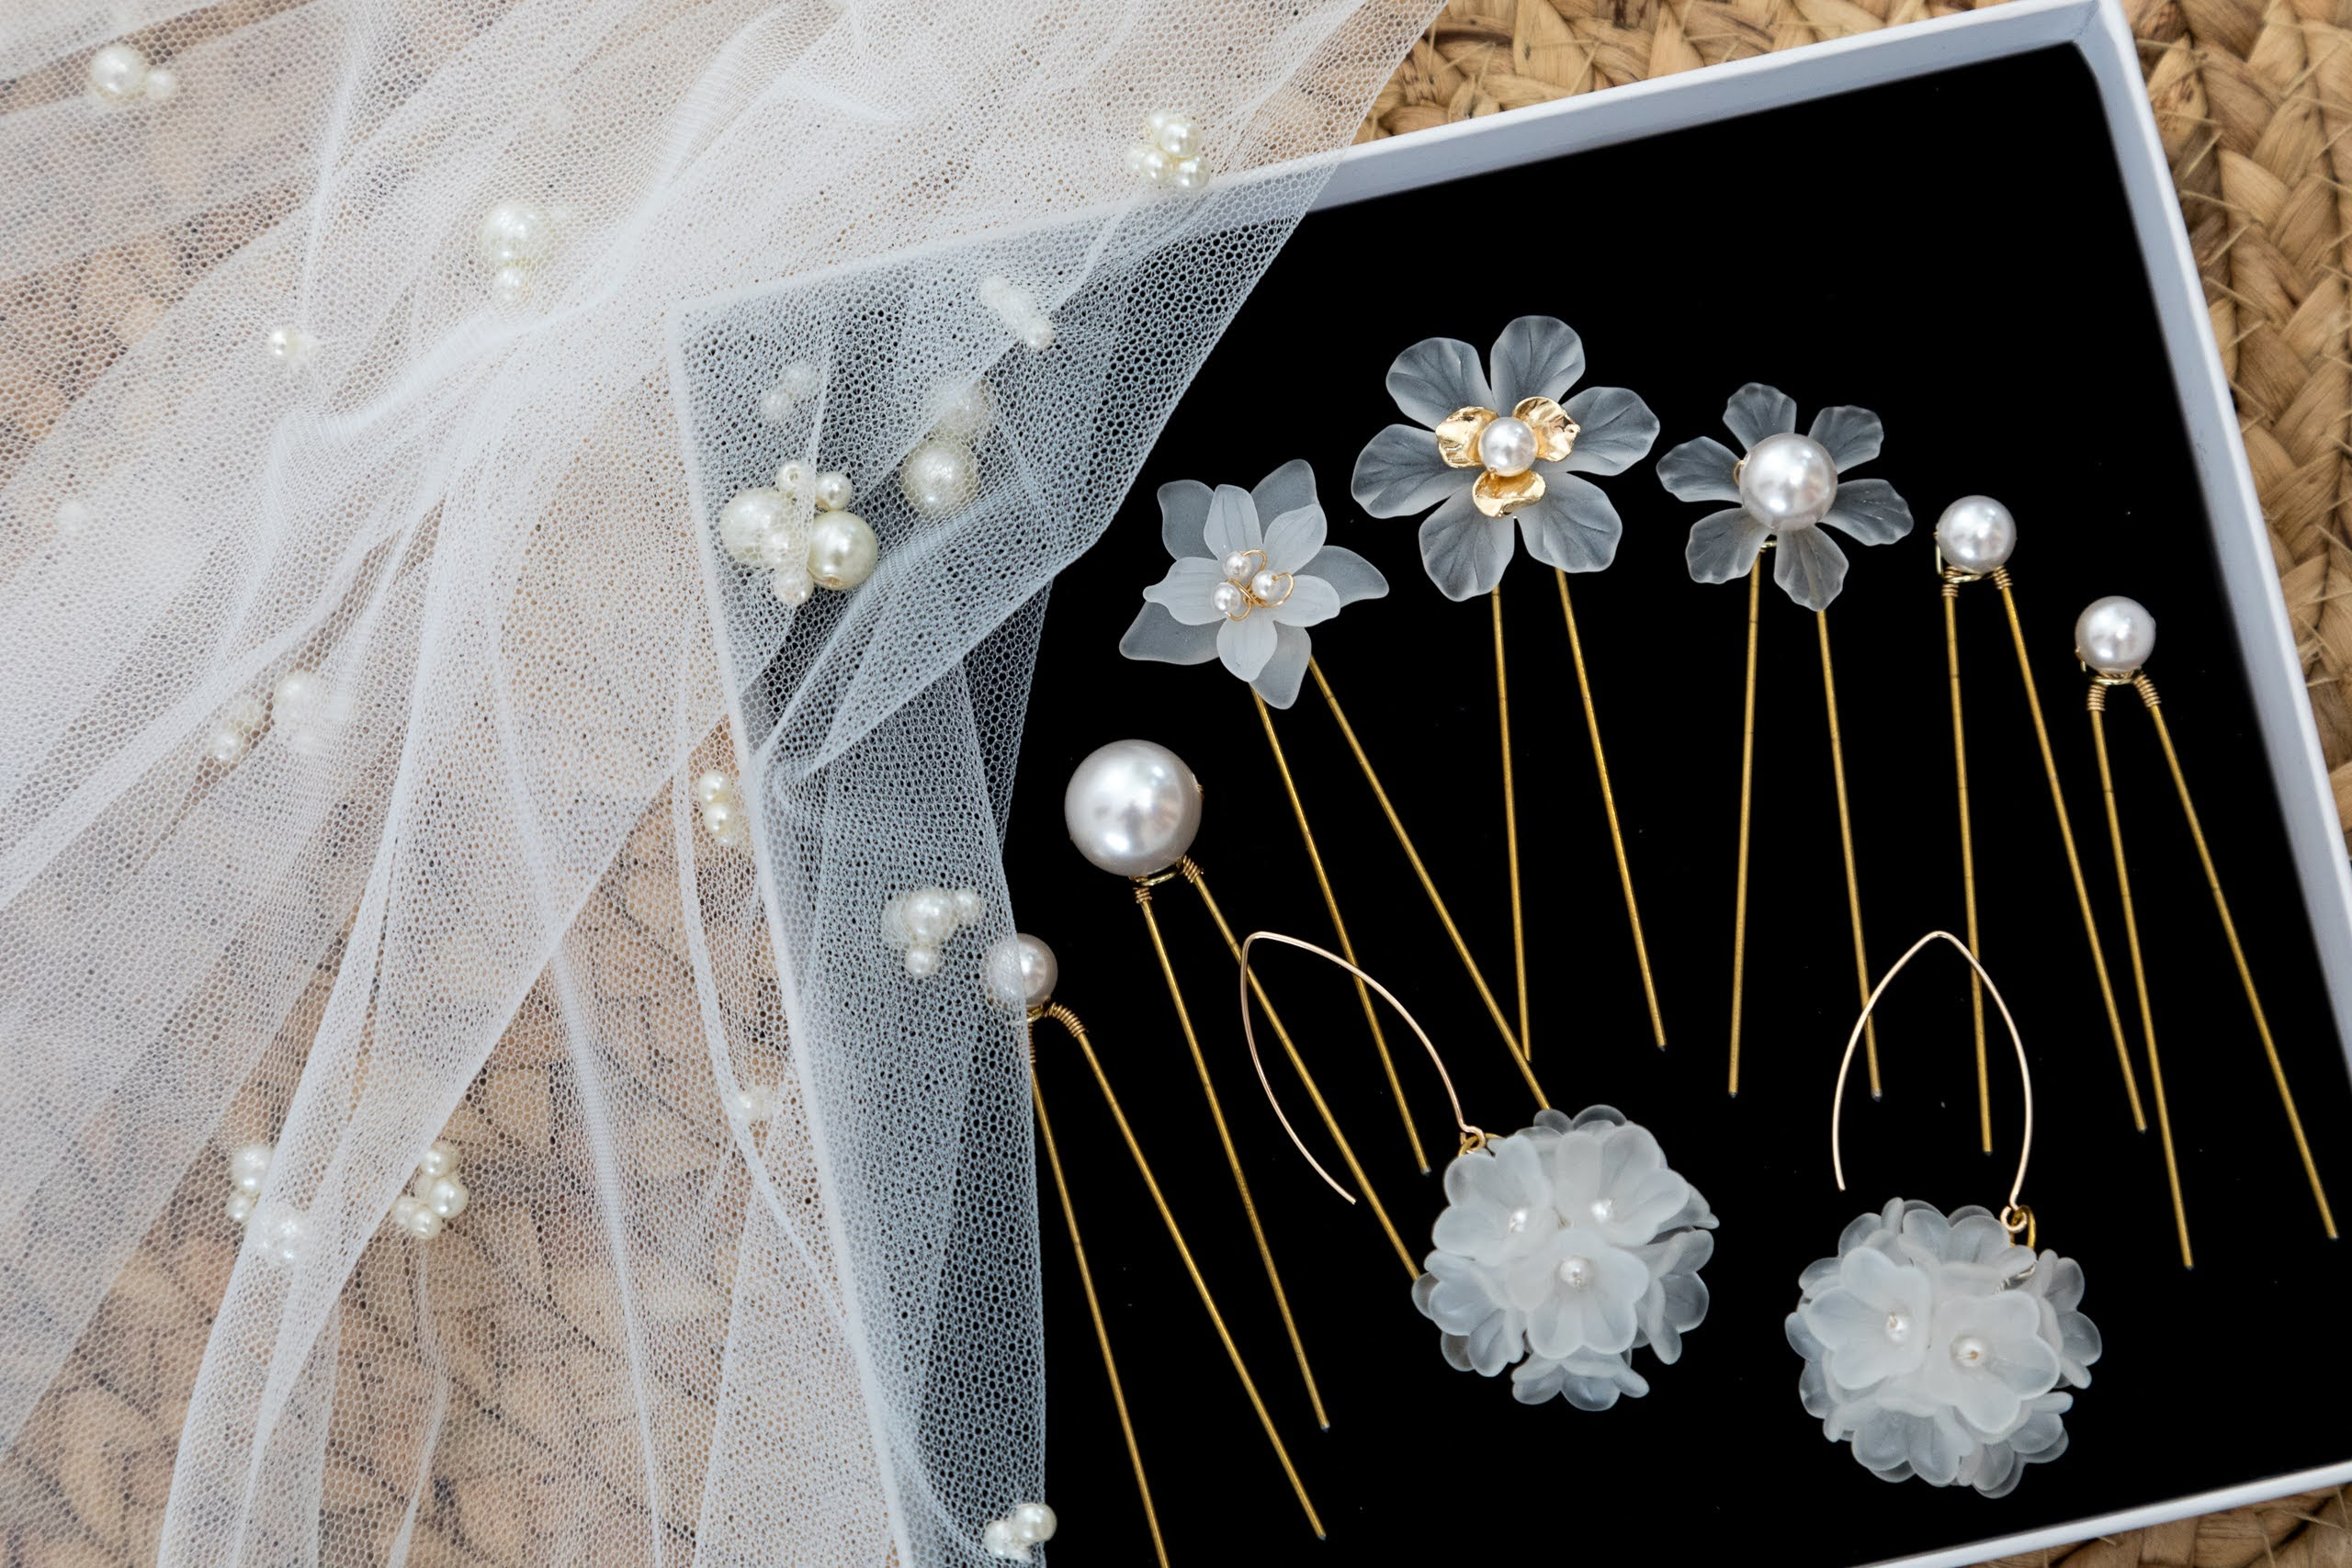 Rare Bridal Studio accessories